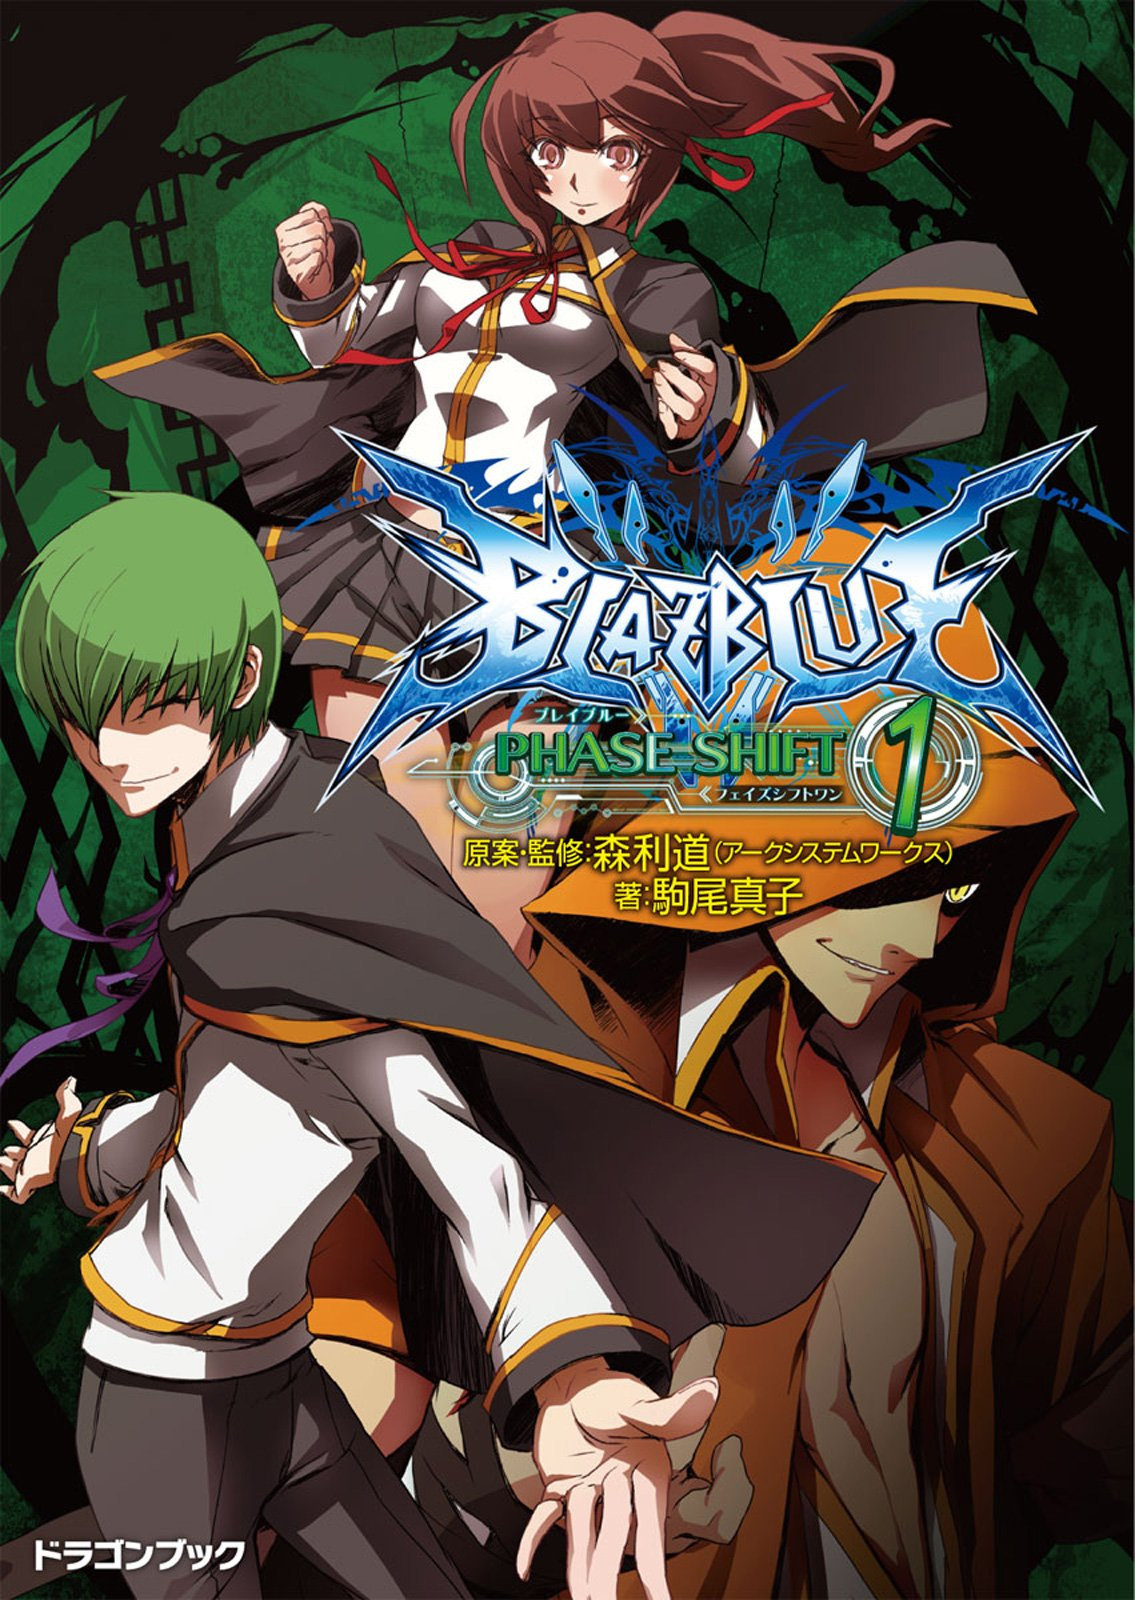 BlazBlue: Phase Shift 1 (April 2011)